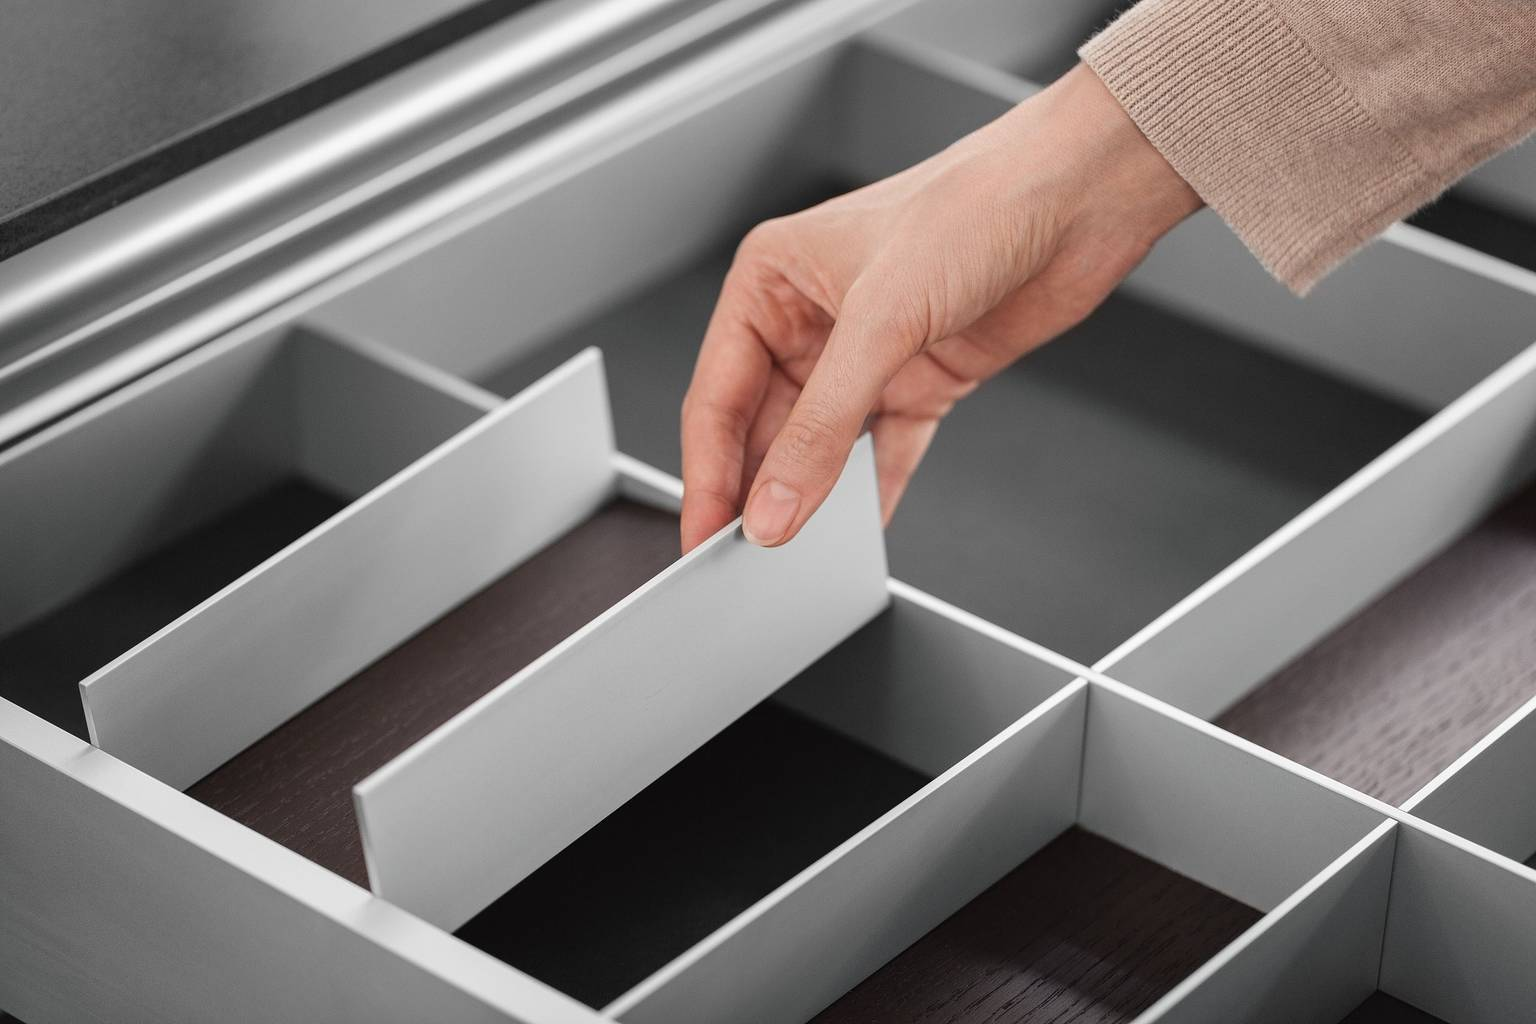 Cutlery inserts in aluminum from SieMatic interior organization accessories